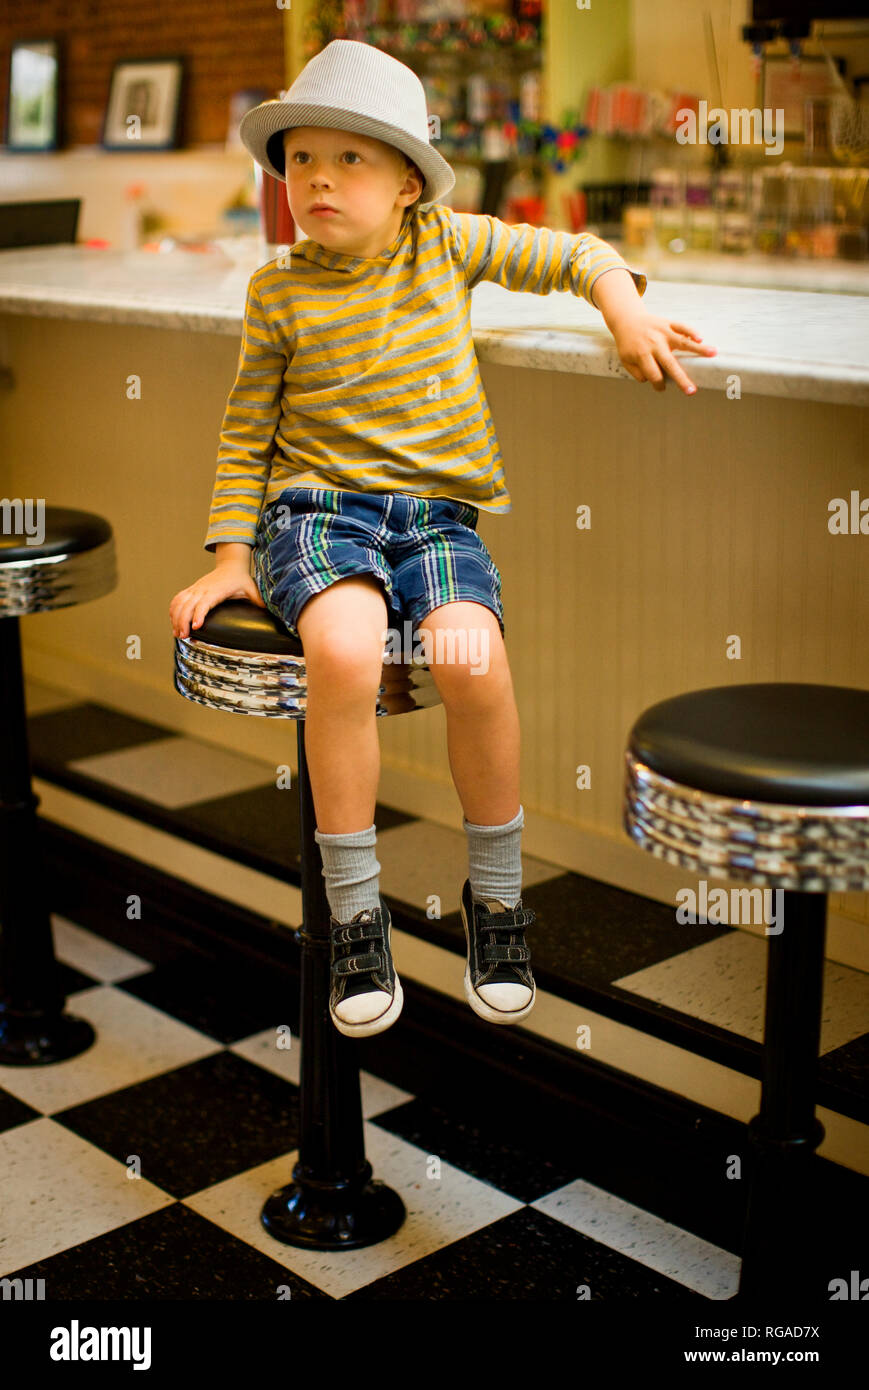 Young boy wearing a porkpie hat perches on a tall stool at a restaurant counter. - Stock Image